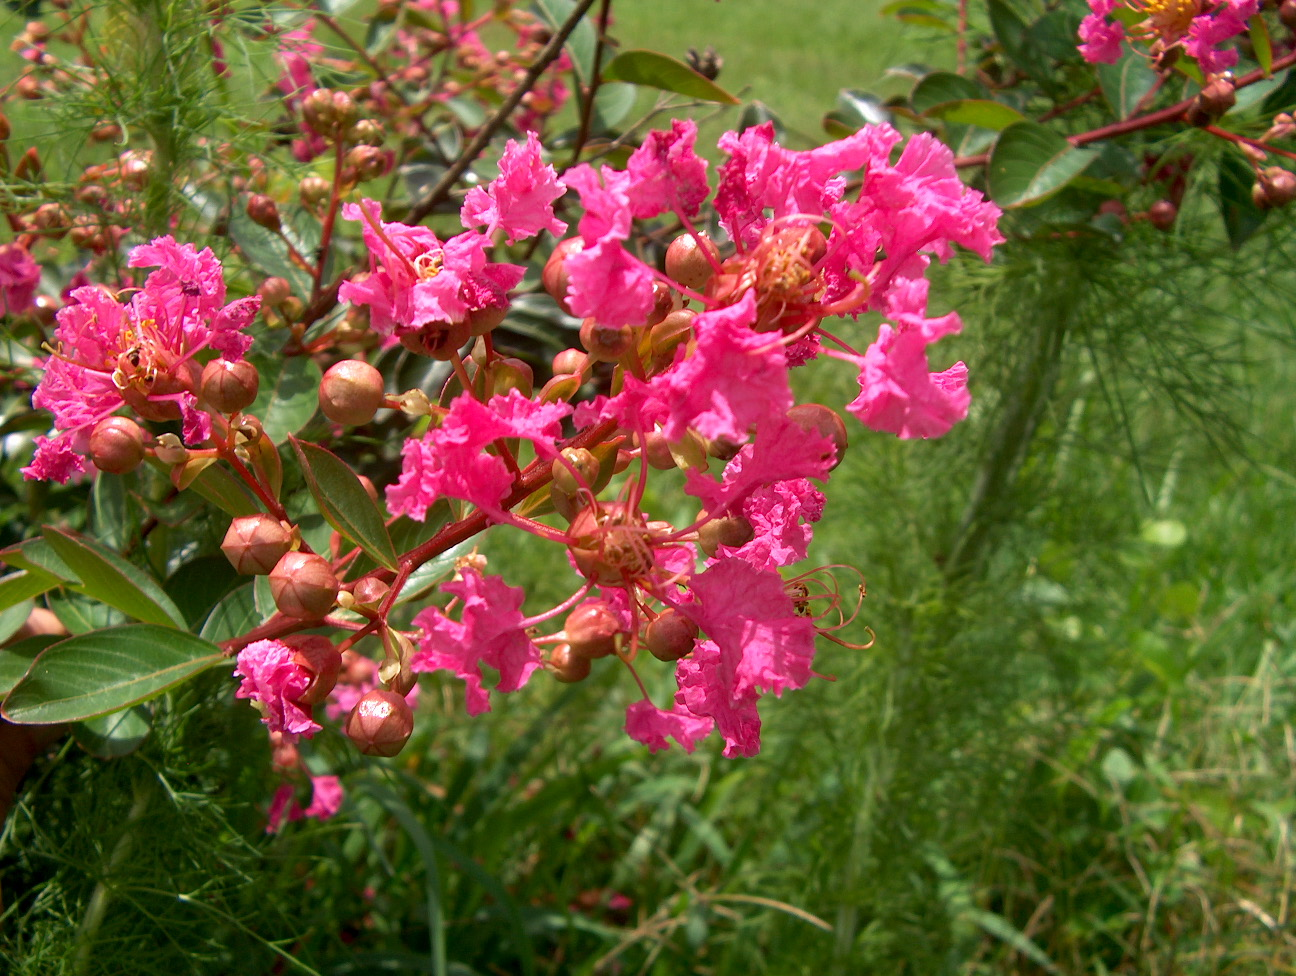 Lagerstroemia indica 'World's Fair' / Lagerstroemia indica 'World's Fair'